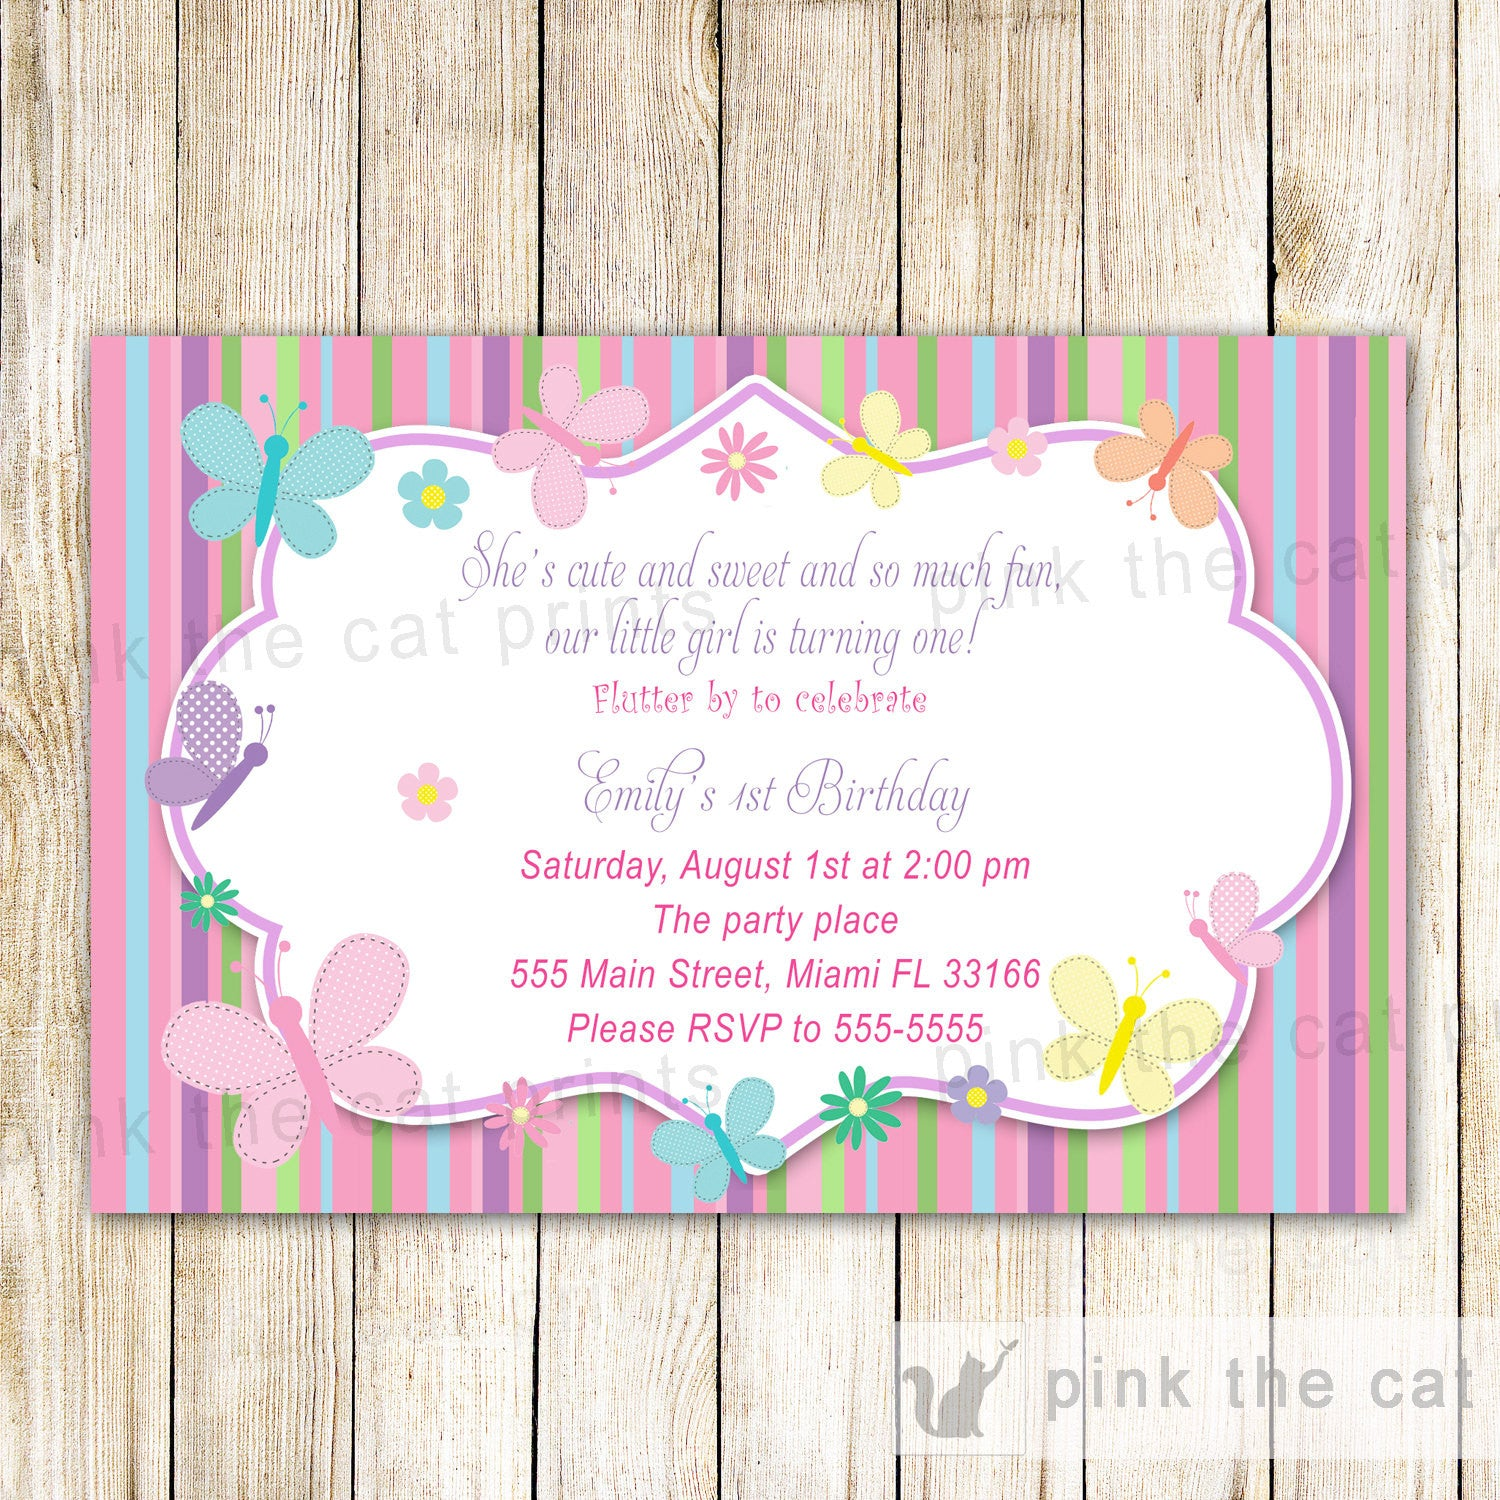 Butterfly Invitation Girl Birthday Party Baby Shower – Pink The Cat